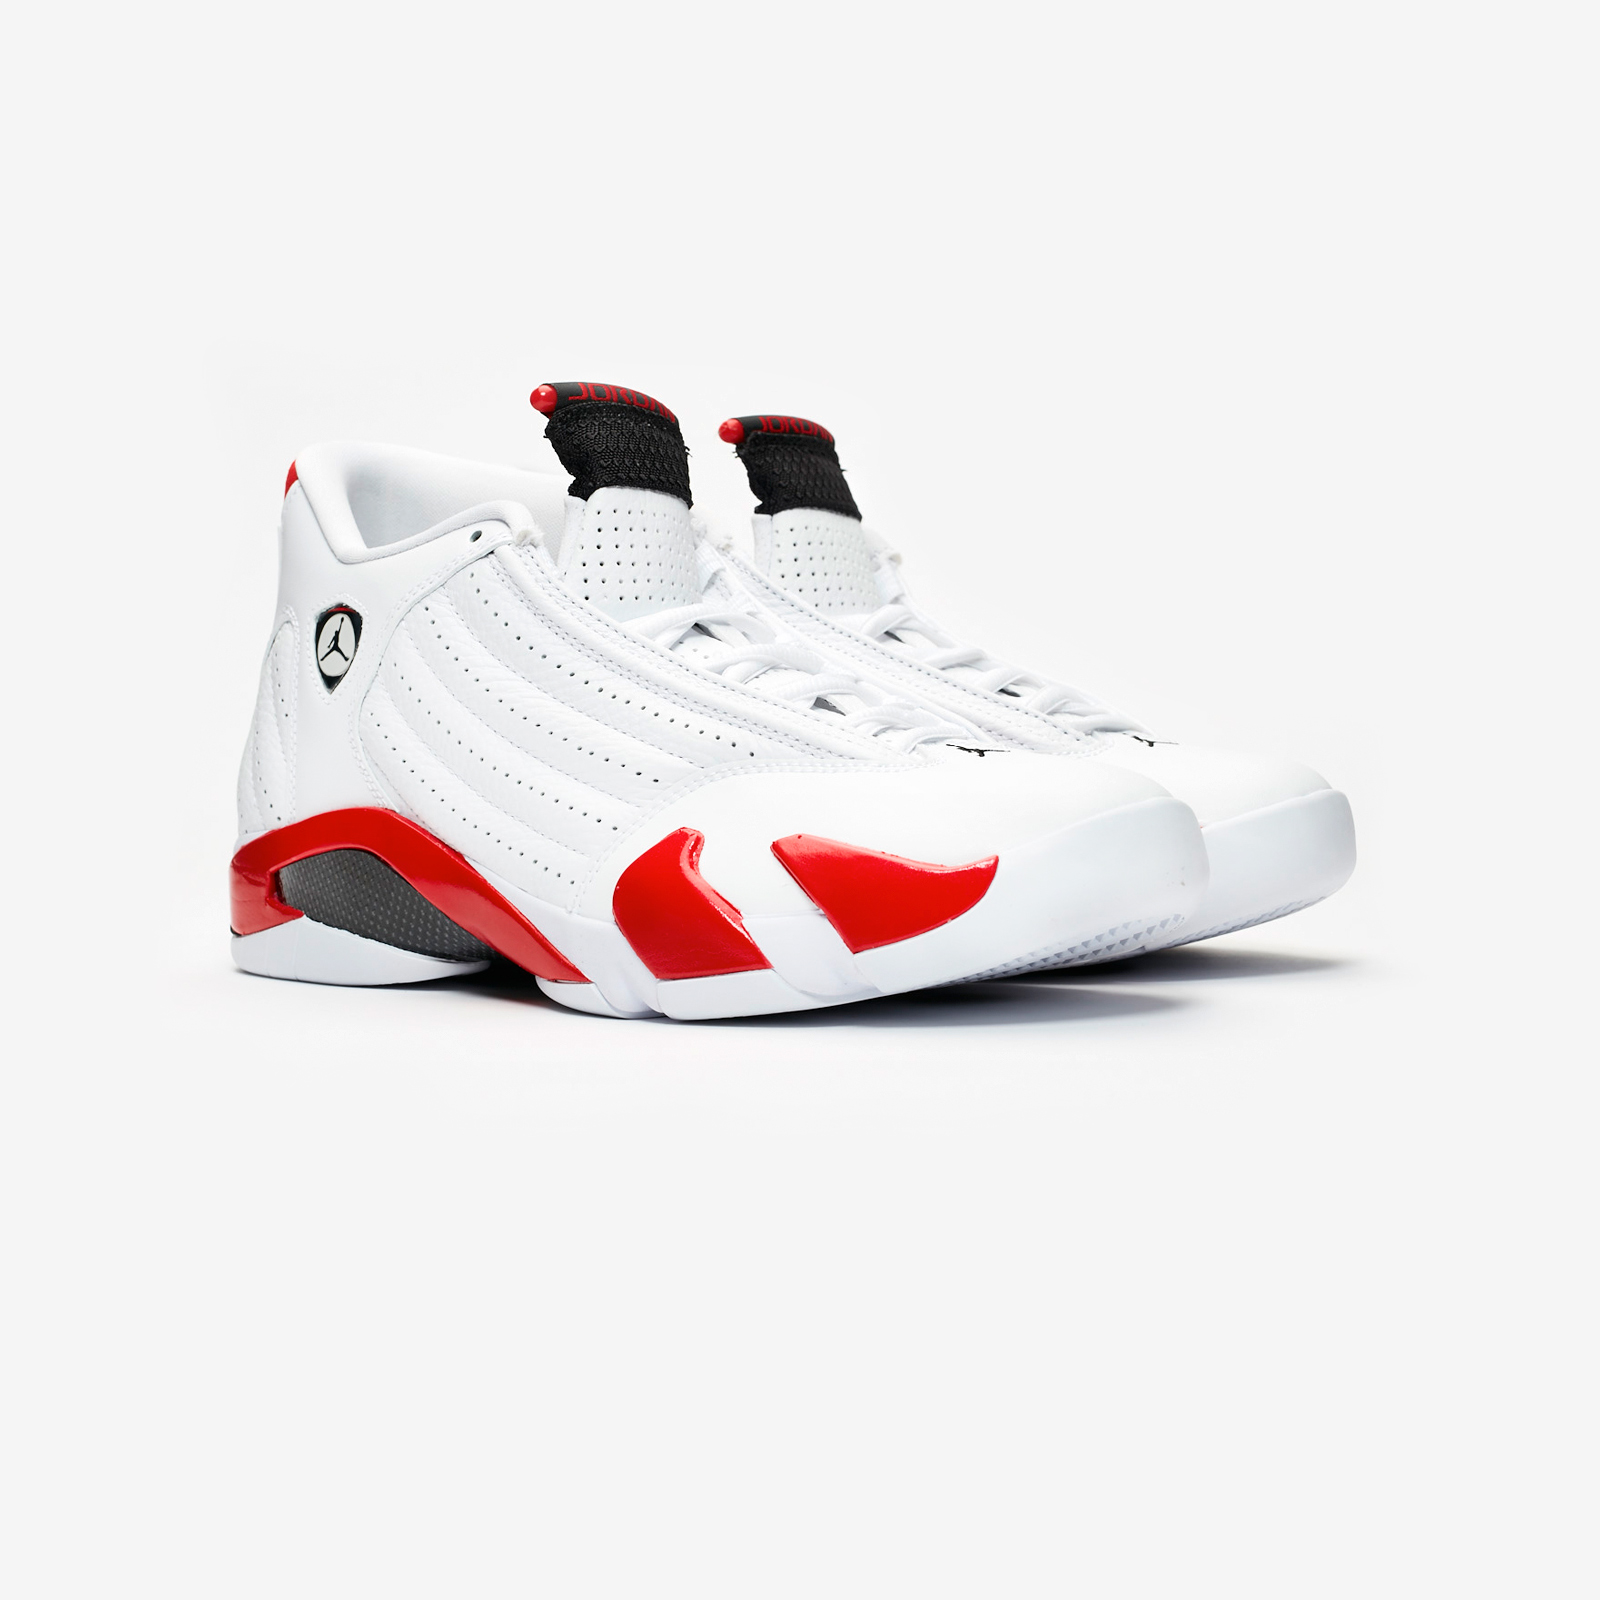 premium selection 6d537 20ee1 Jordan Brand Air Jordan 14 Retro